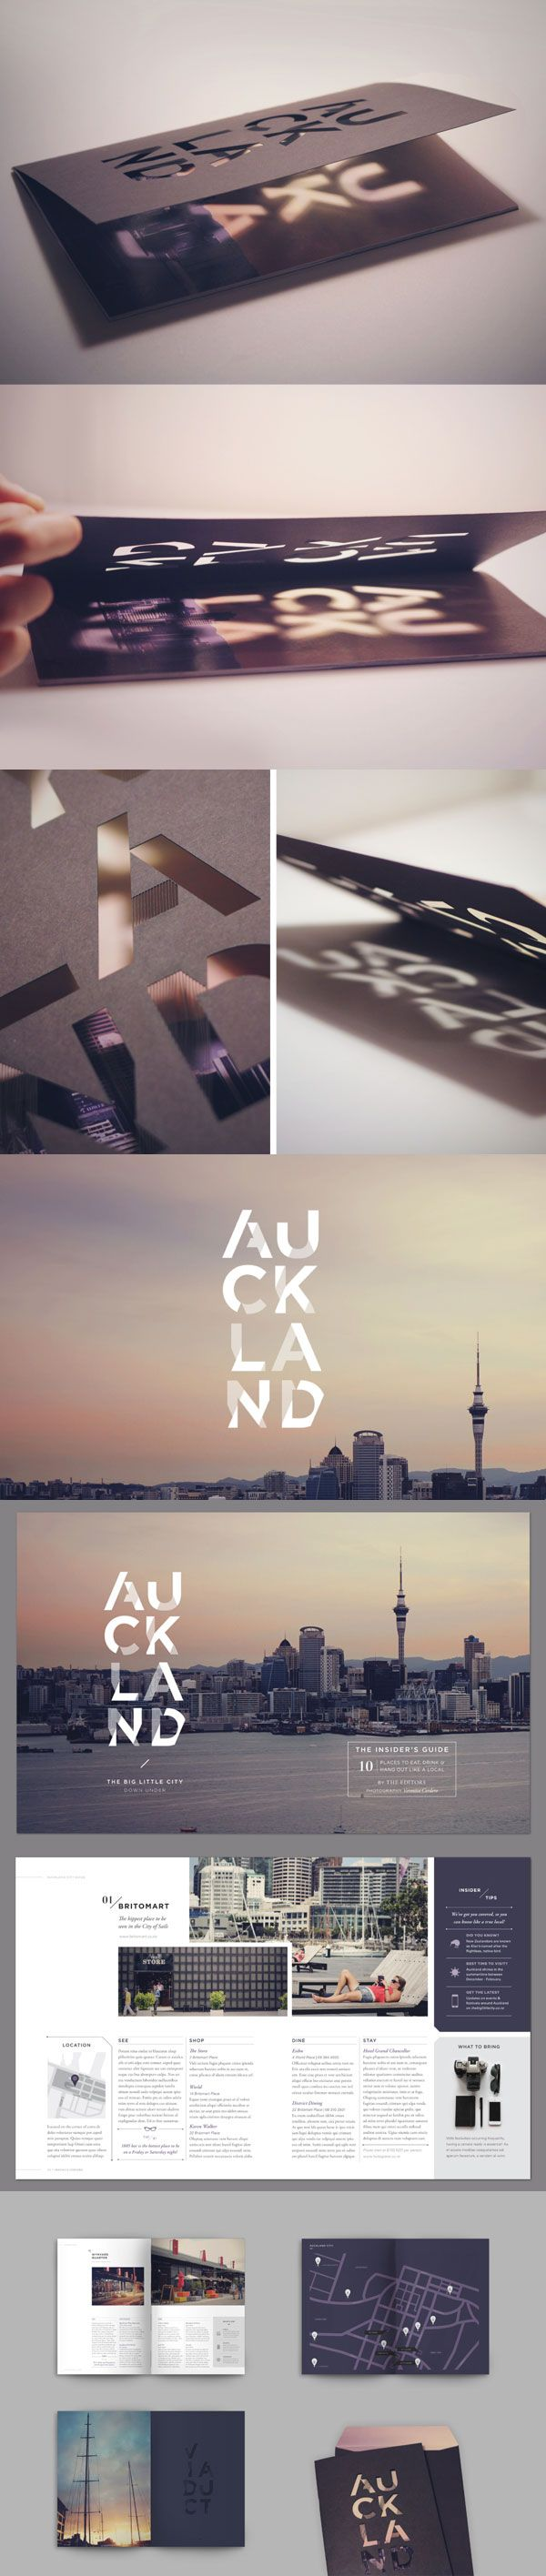 LED light shines through cut out letters. The light turns on automatically as you open it. | pinned by www.website-designers.co.nz/